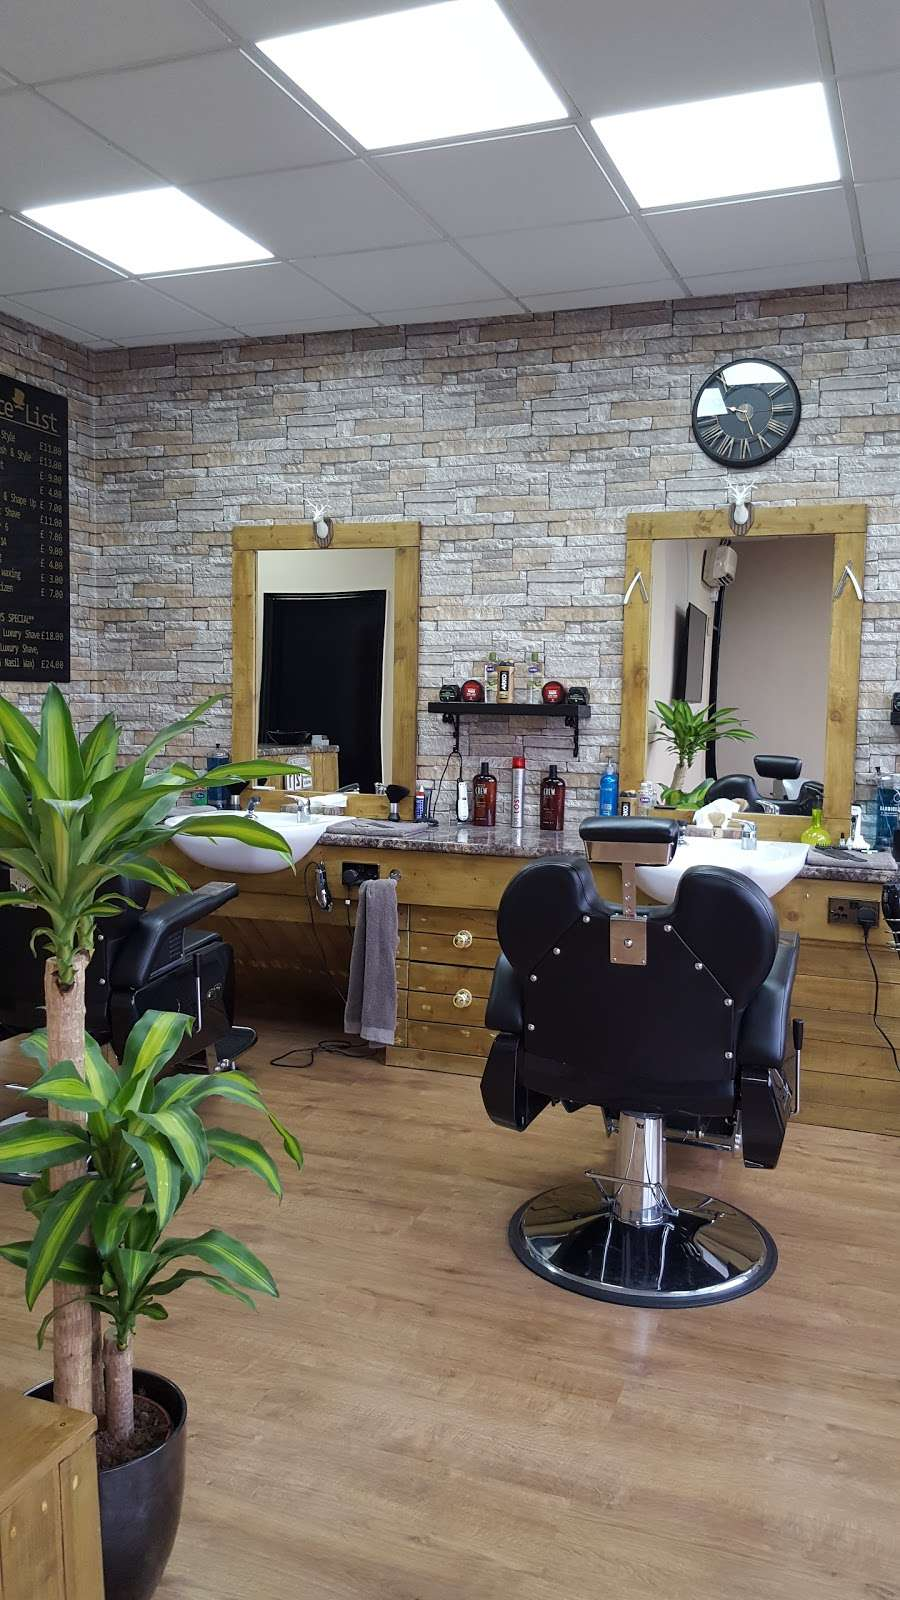 THE VILLAGE BARBERS 82 - hair care  | Photo 3 of 10 | Address: 82 Limpsfield Rd, Warlingham CR6 9RA, UK | Phone: 01883 624274